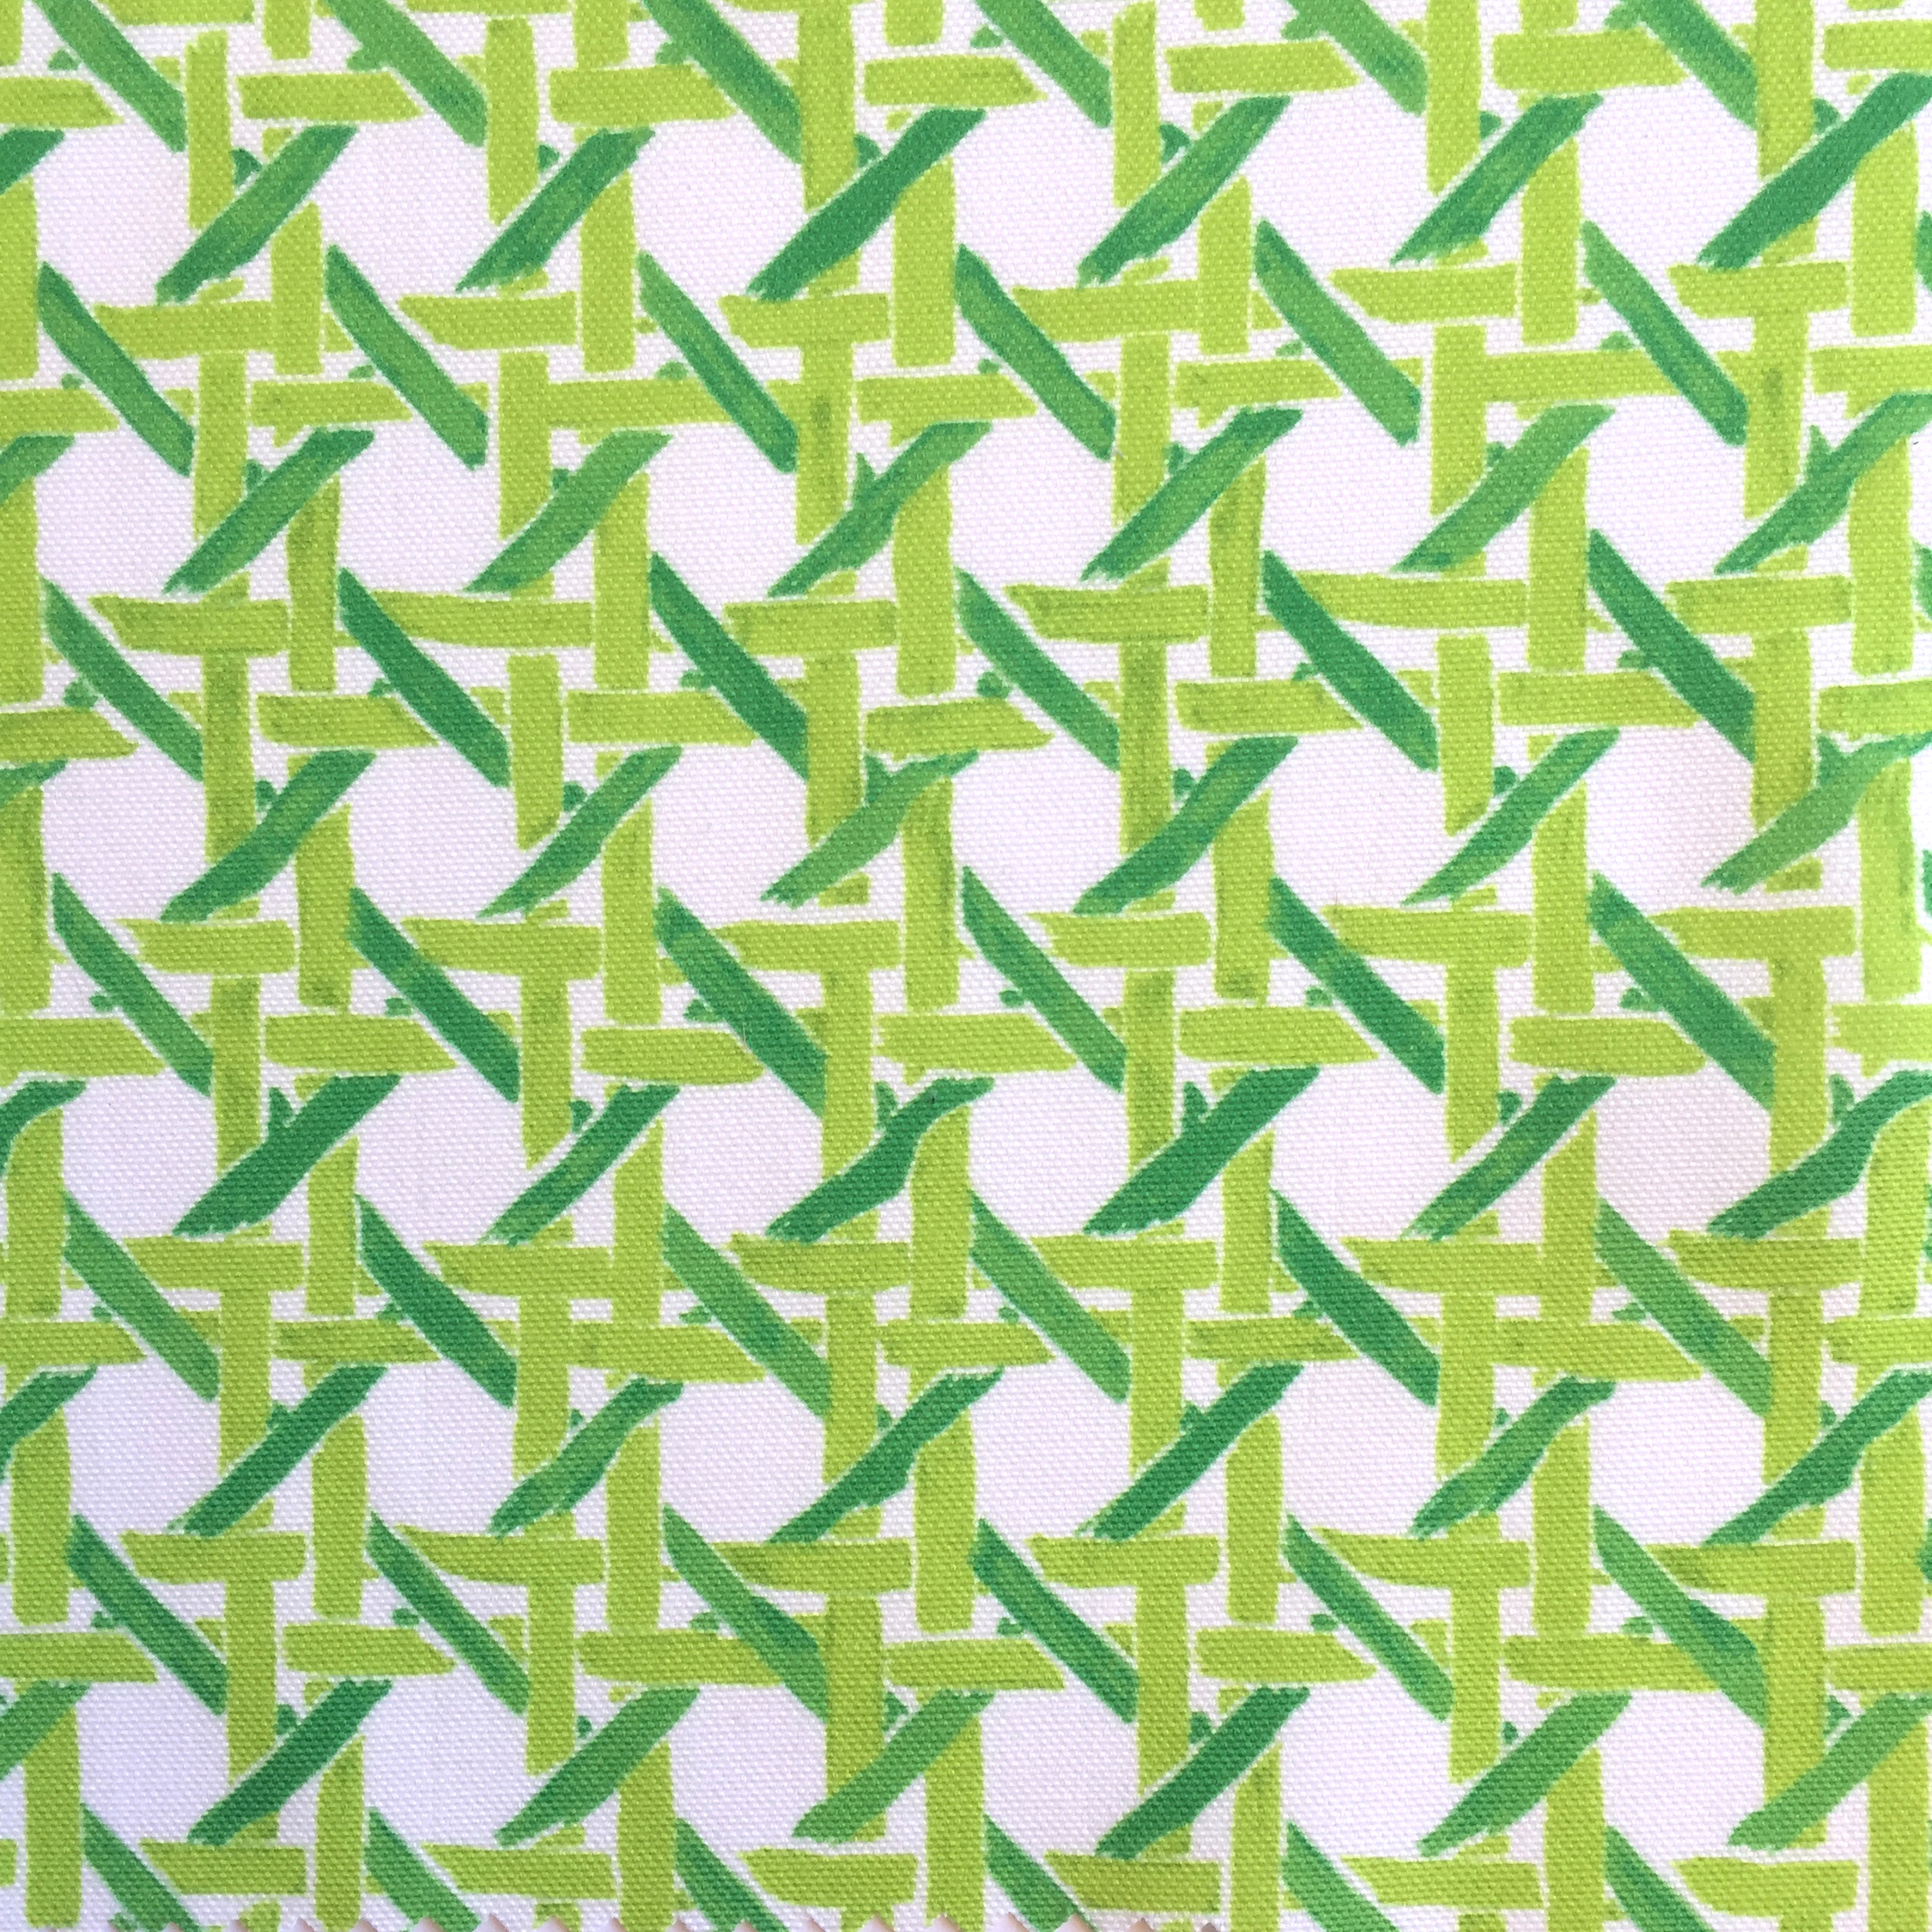 Cane Print in Gimlet  PALM SPRINGS COLLECTION